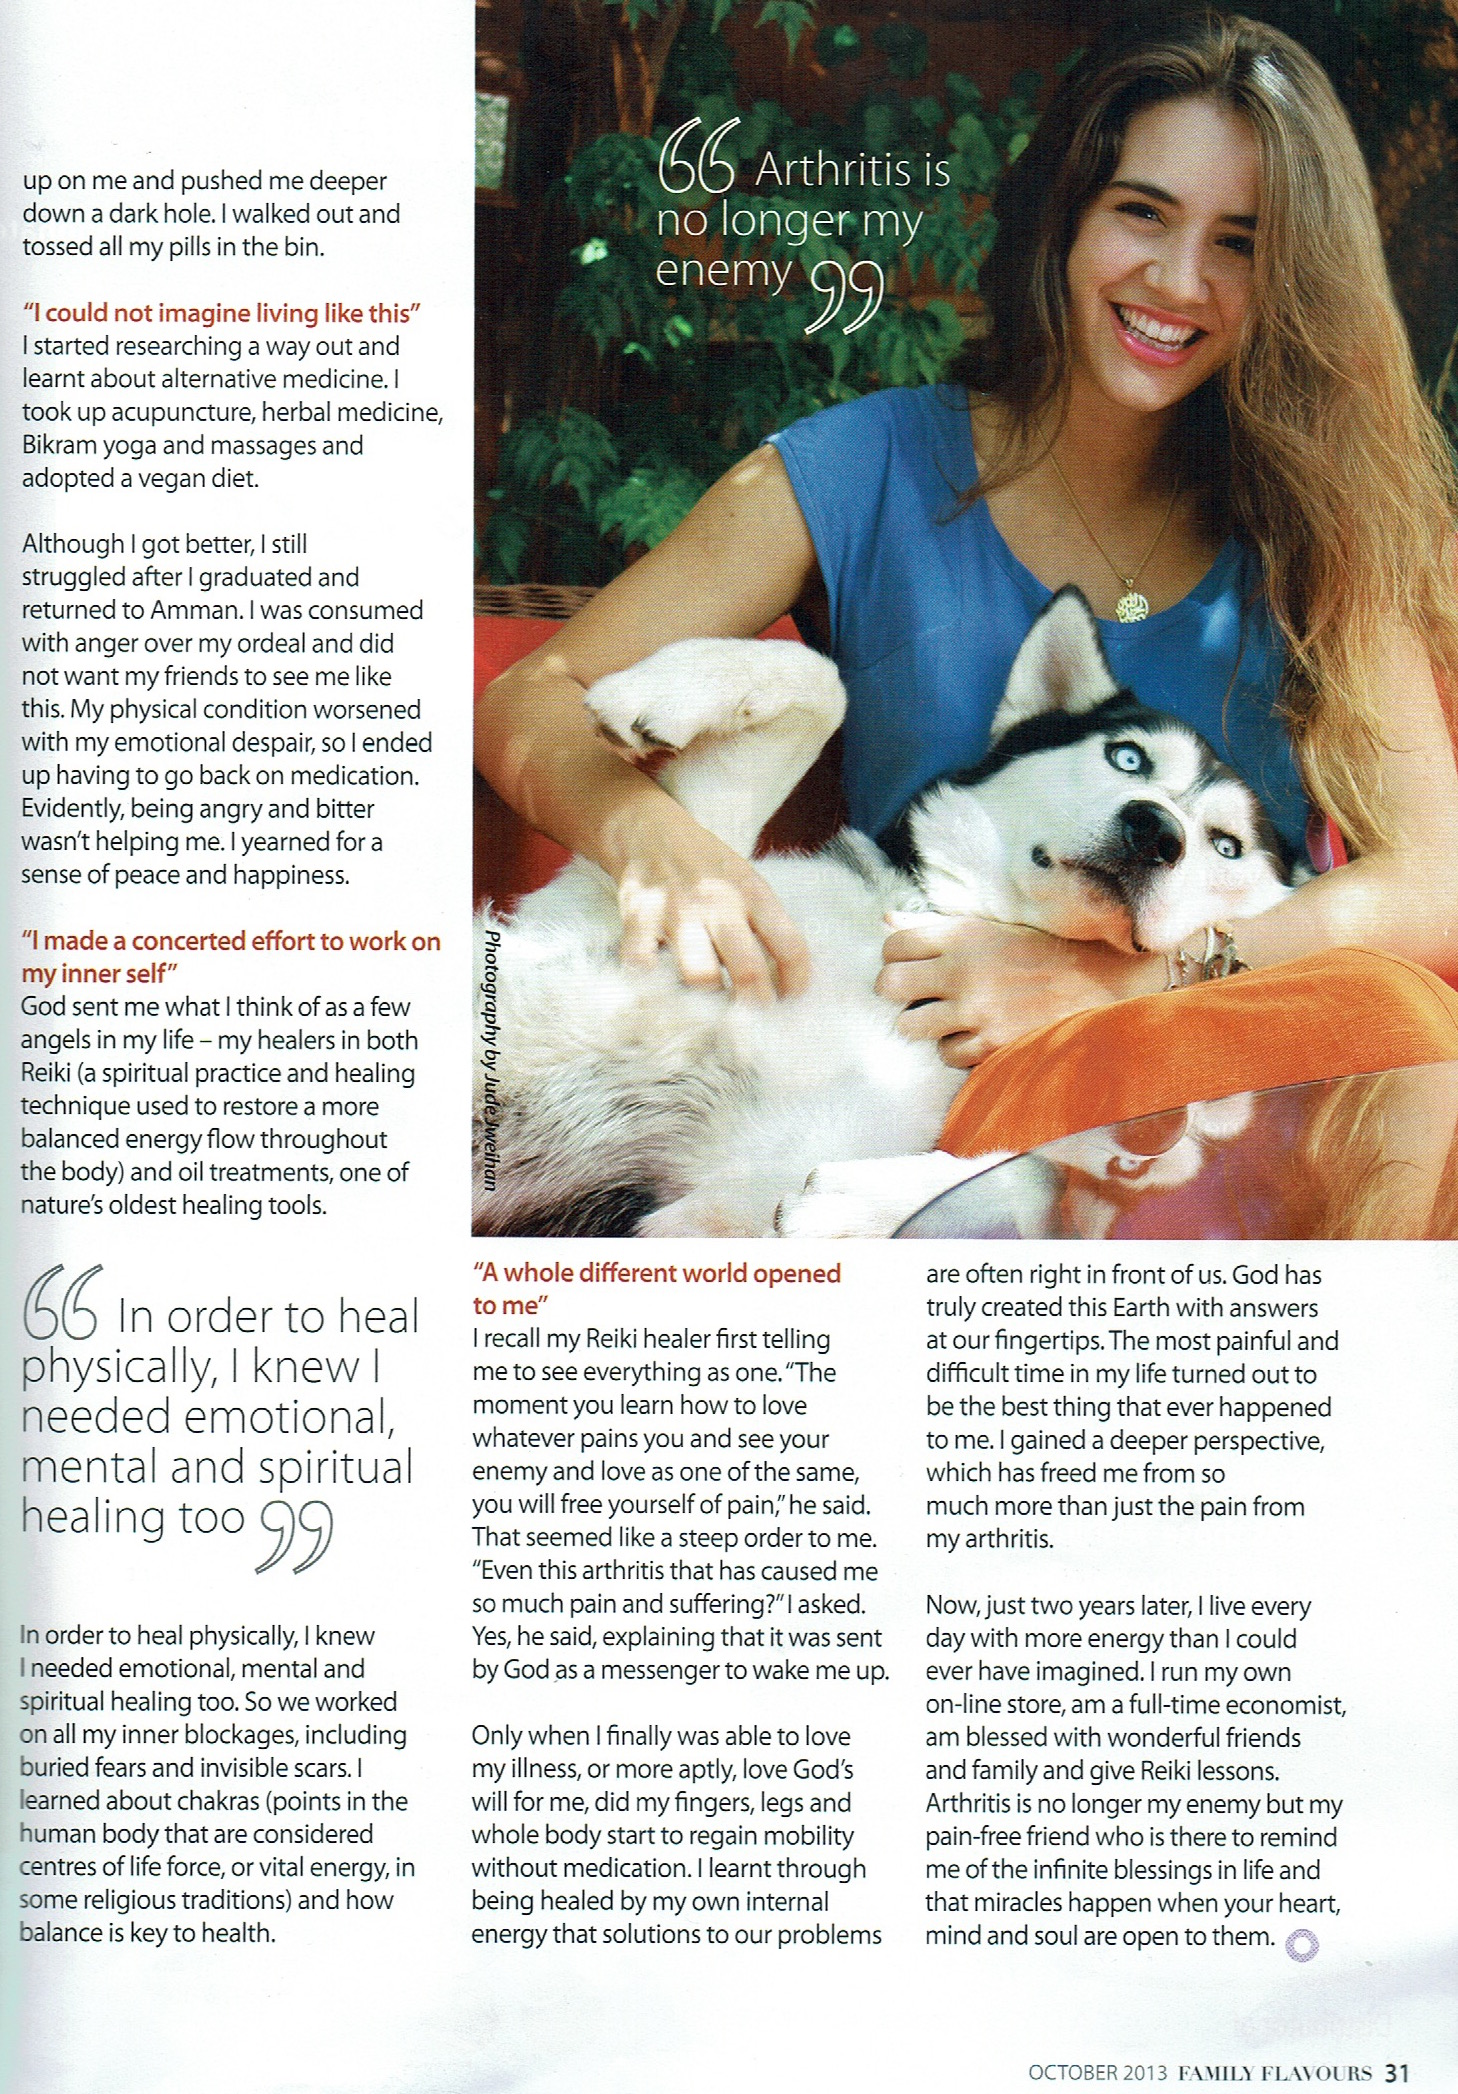 Miracles Do Happen - Article featured in Family Flavors magazine in Jordan part 2